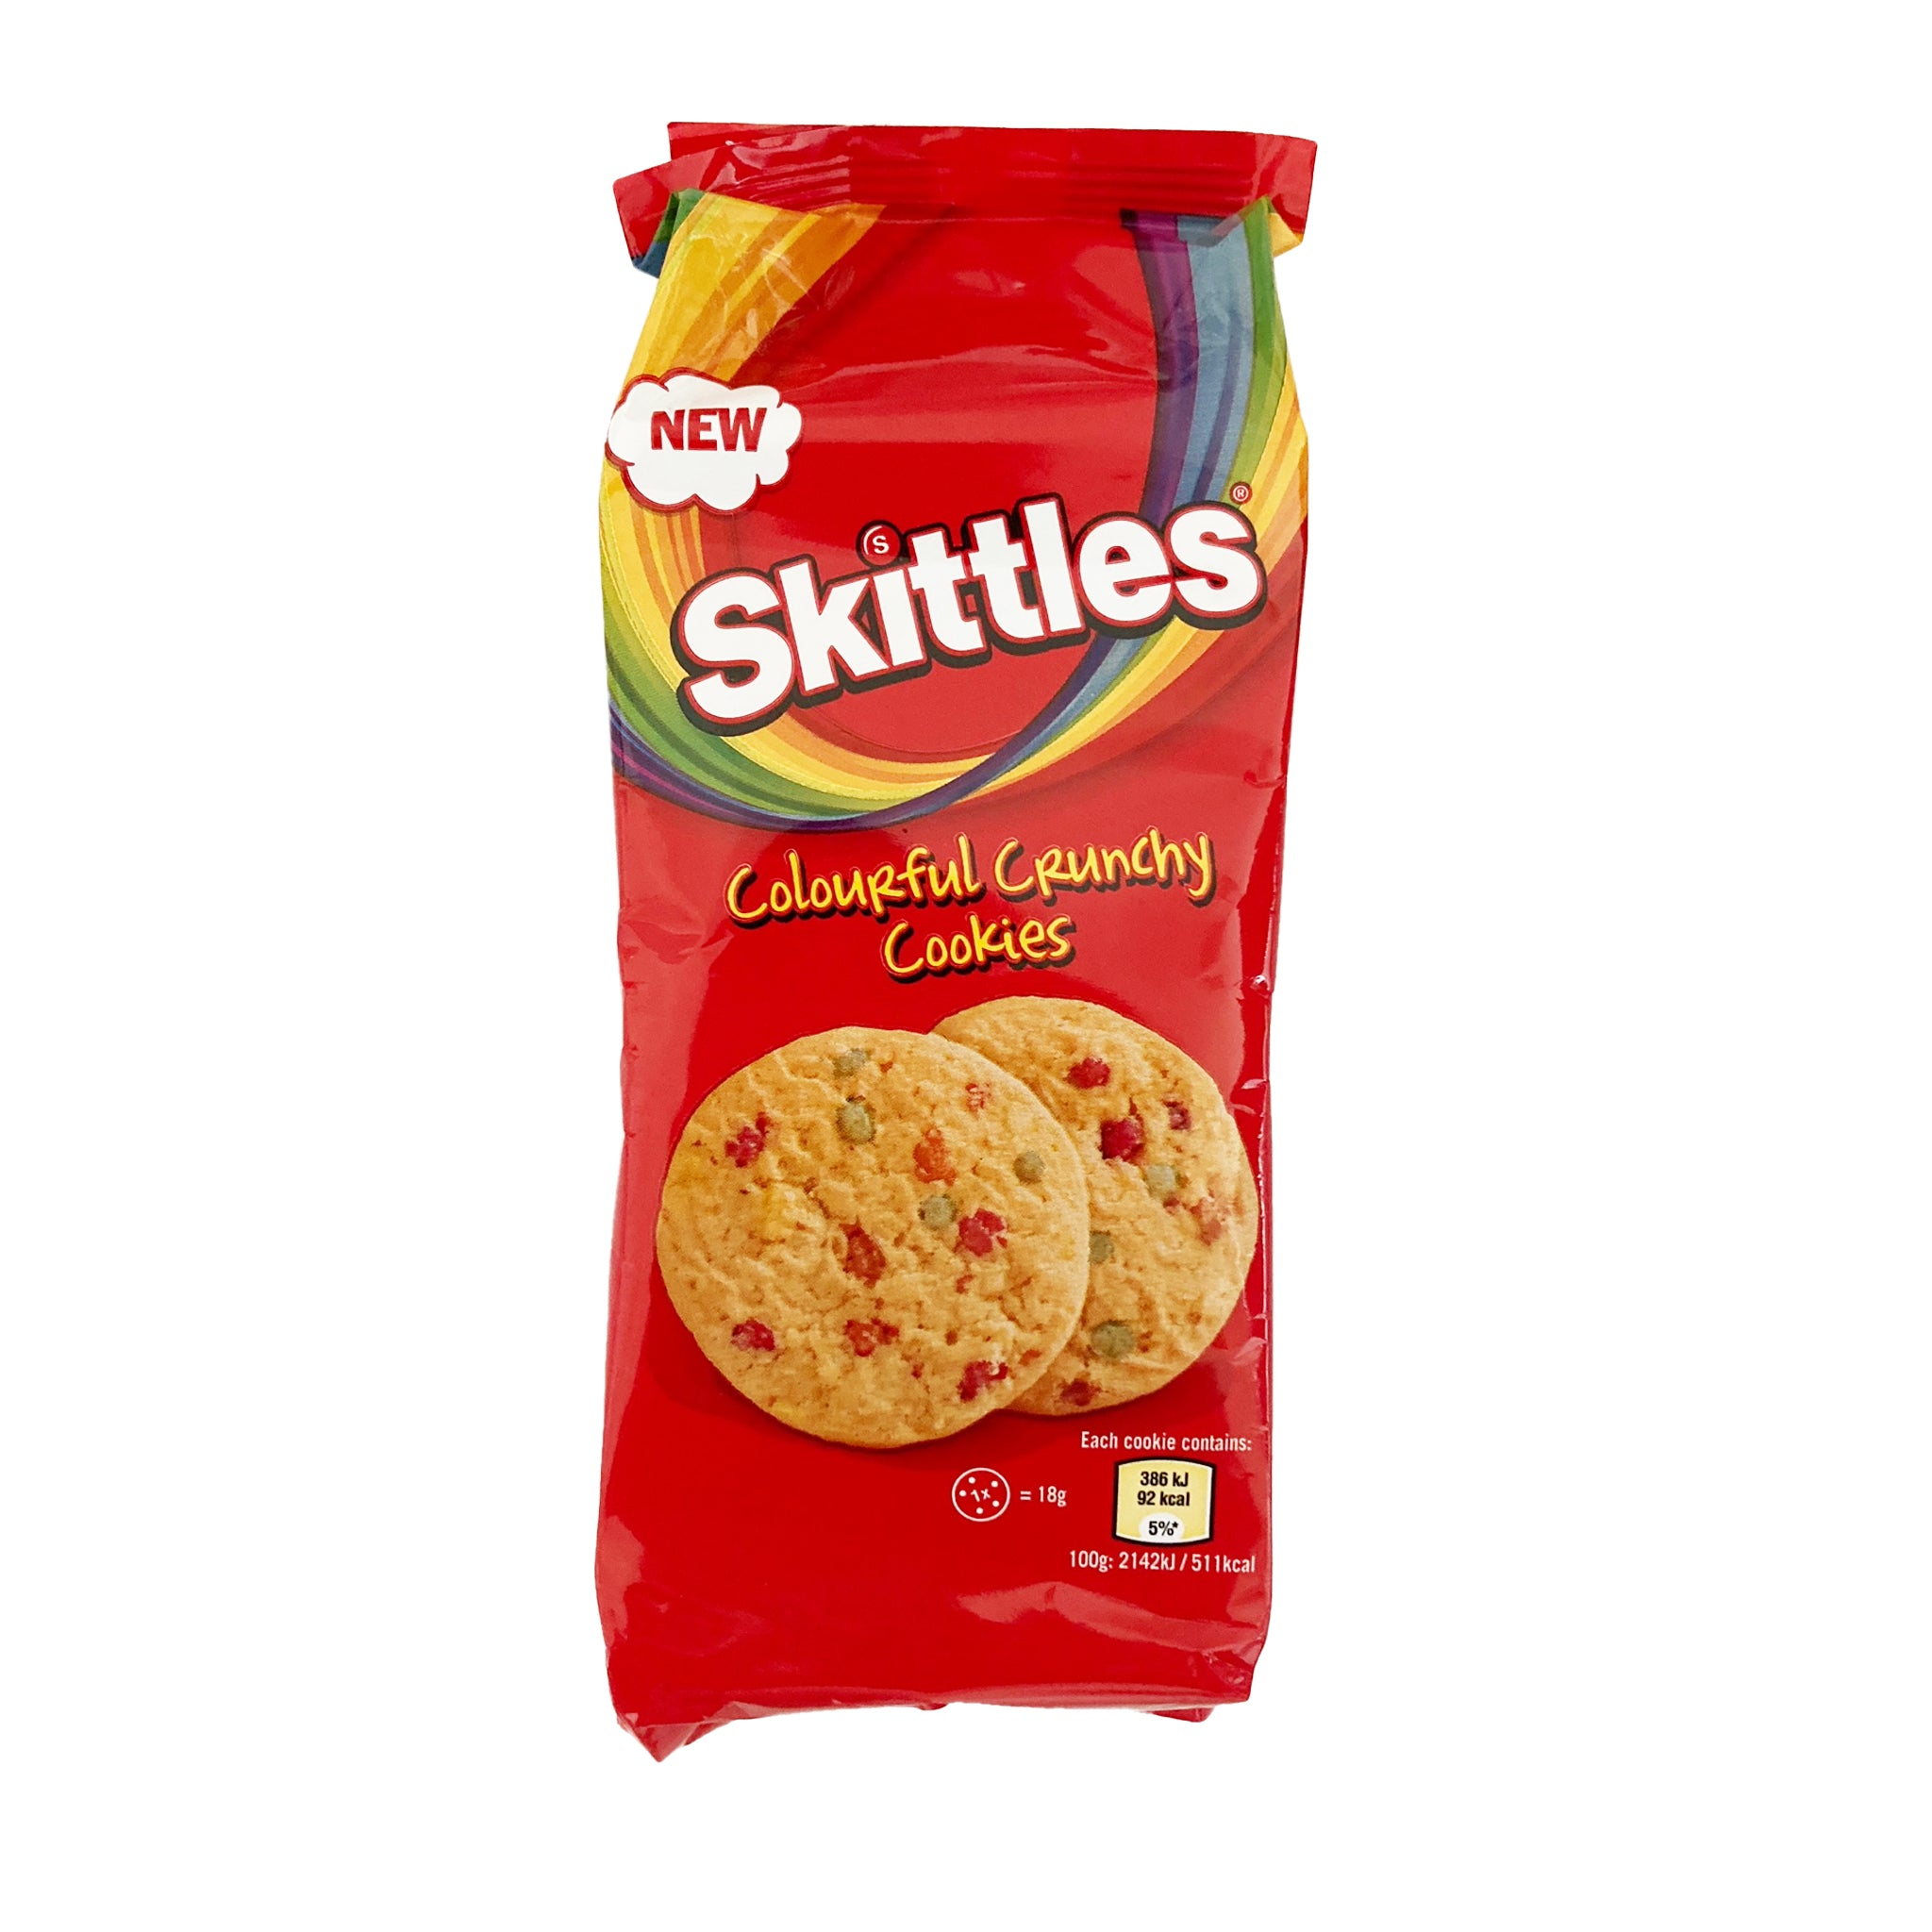 Skittles Cookies עוגיות סקיטלס